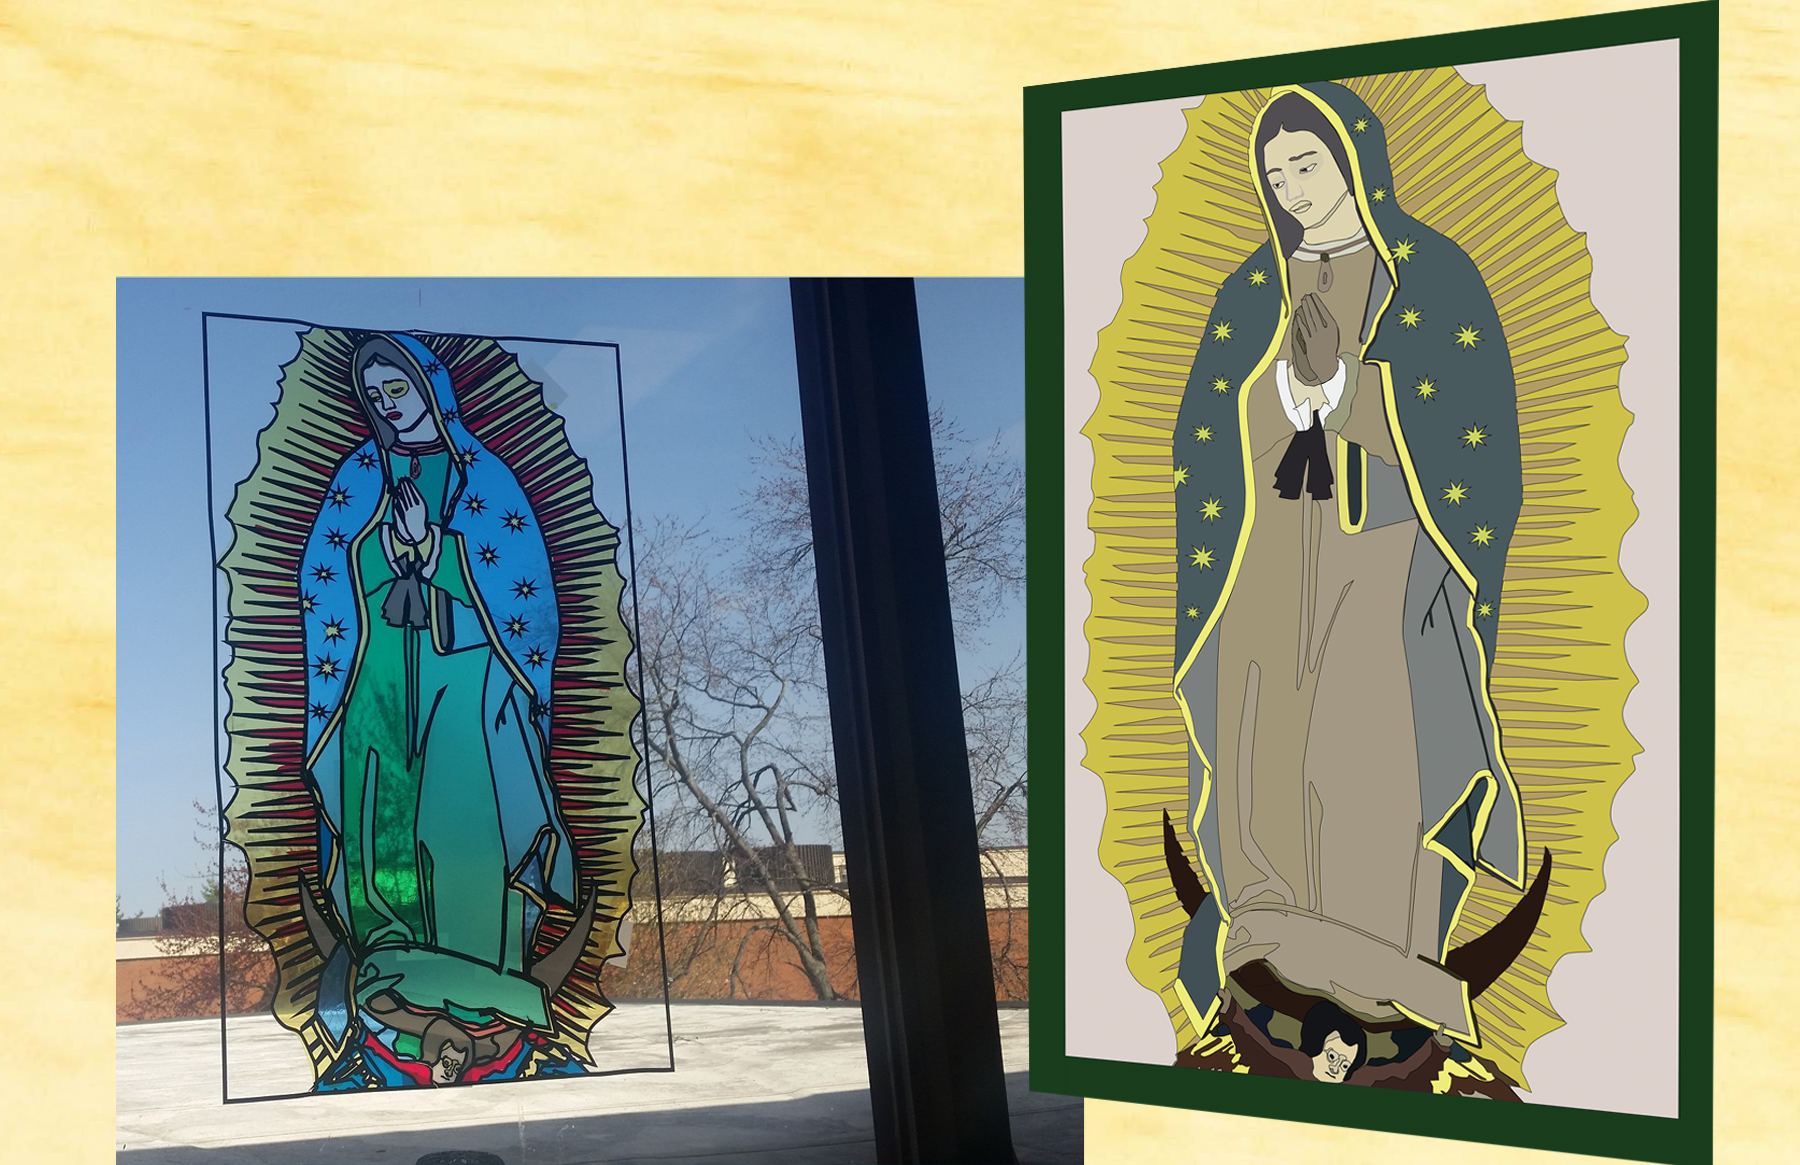 Our Lady of Guadalupe Illustration: Stained Glass Project - Bryan Hewing (2018)